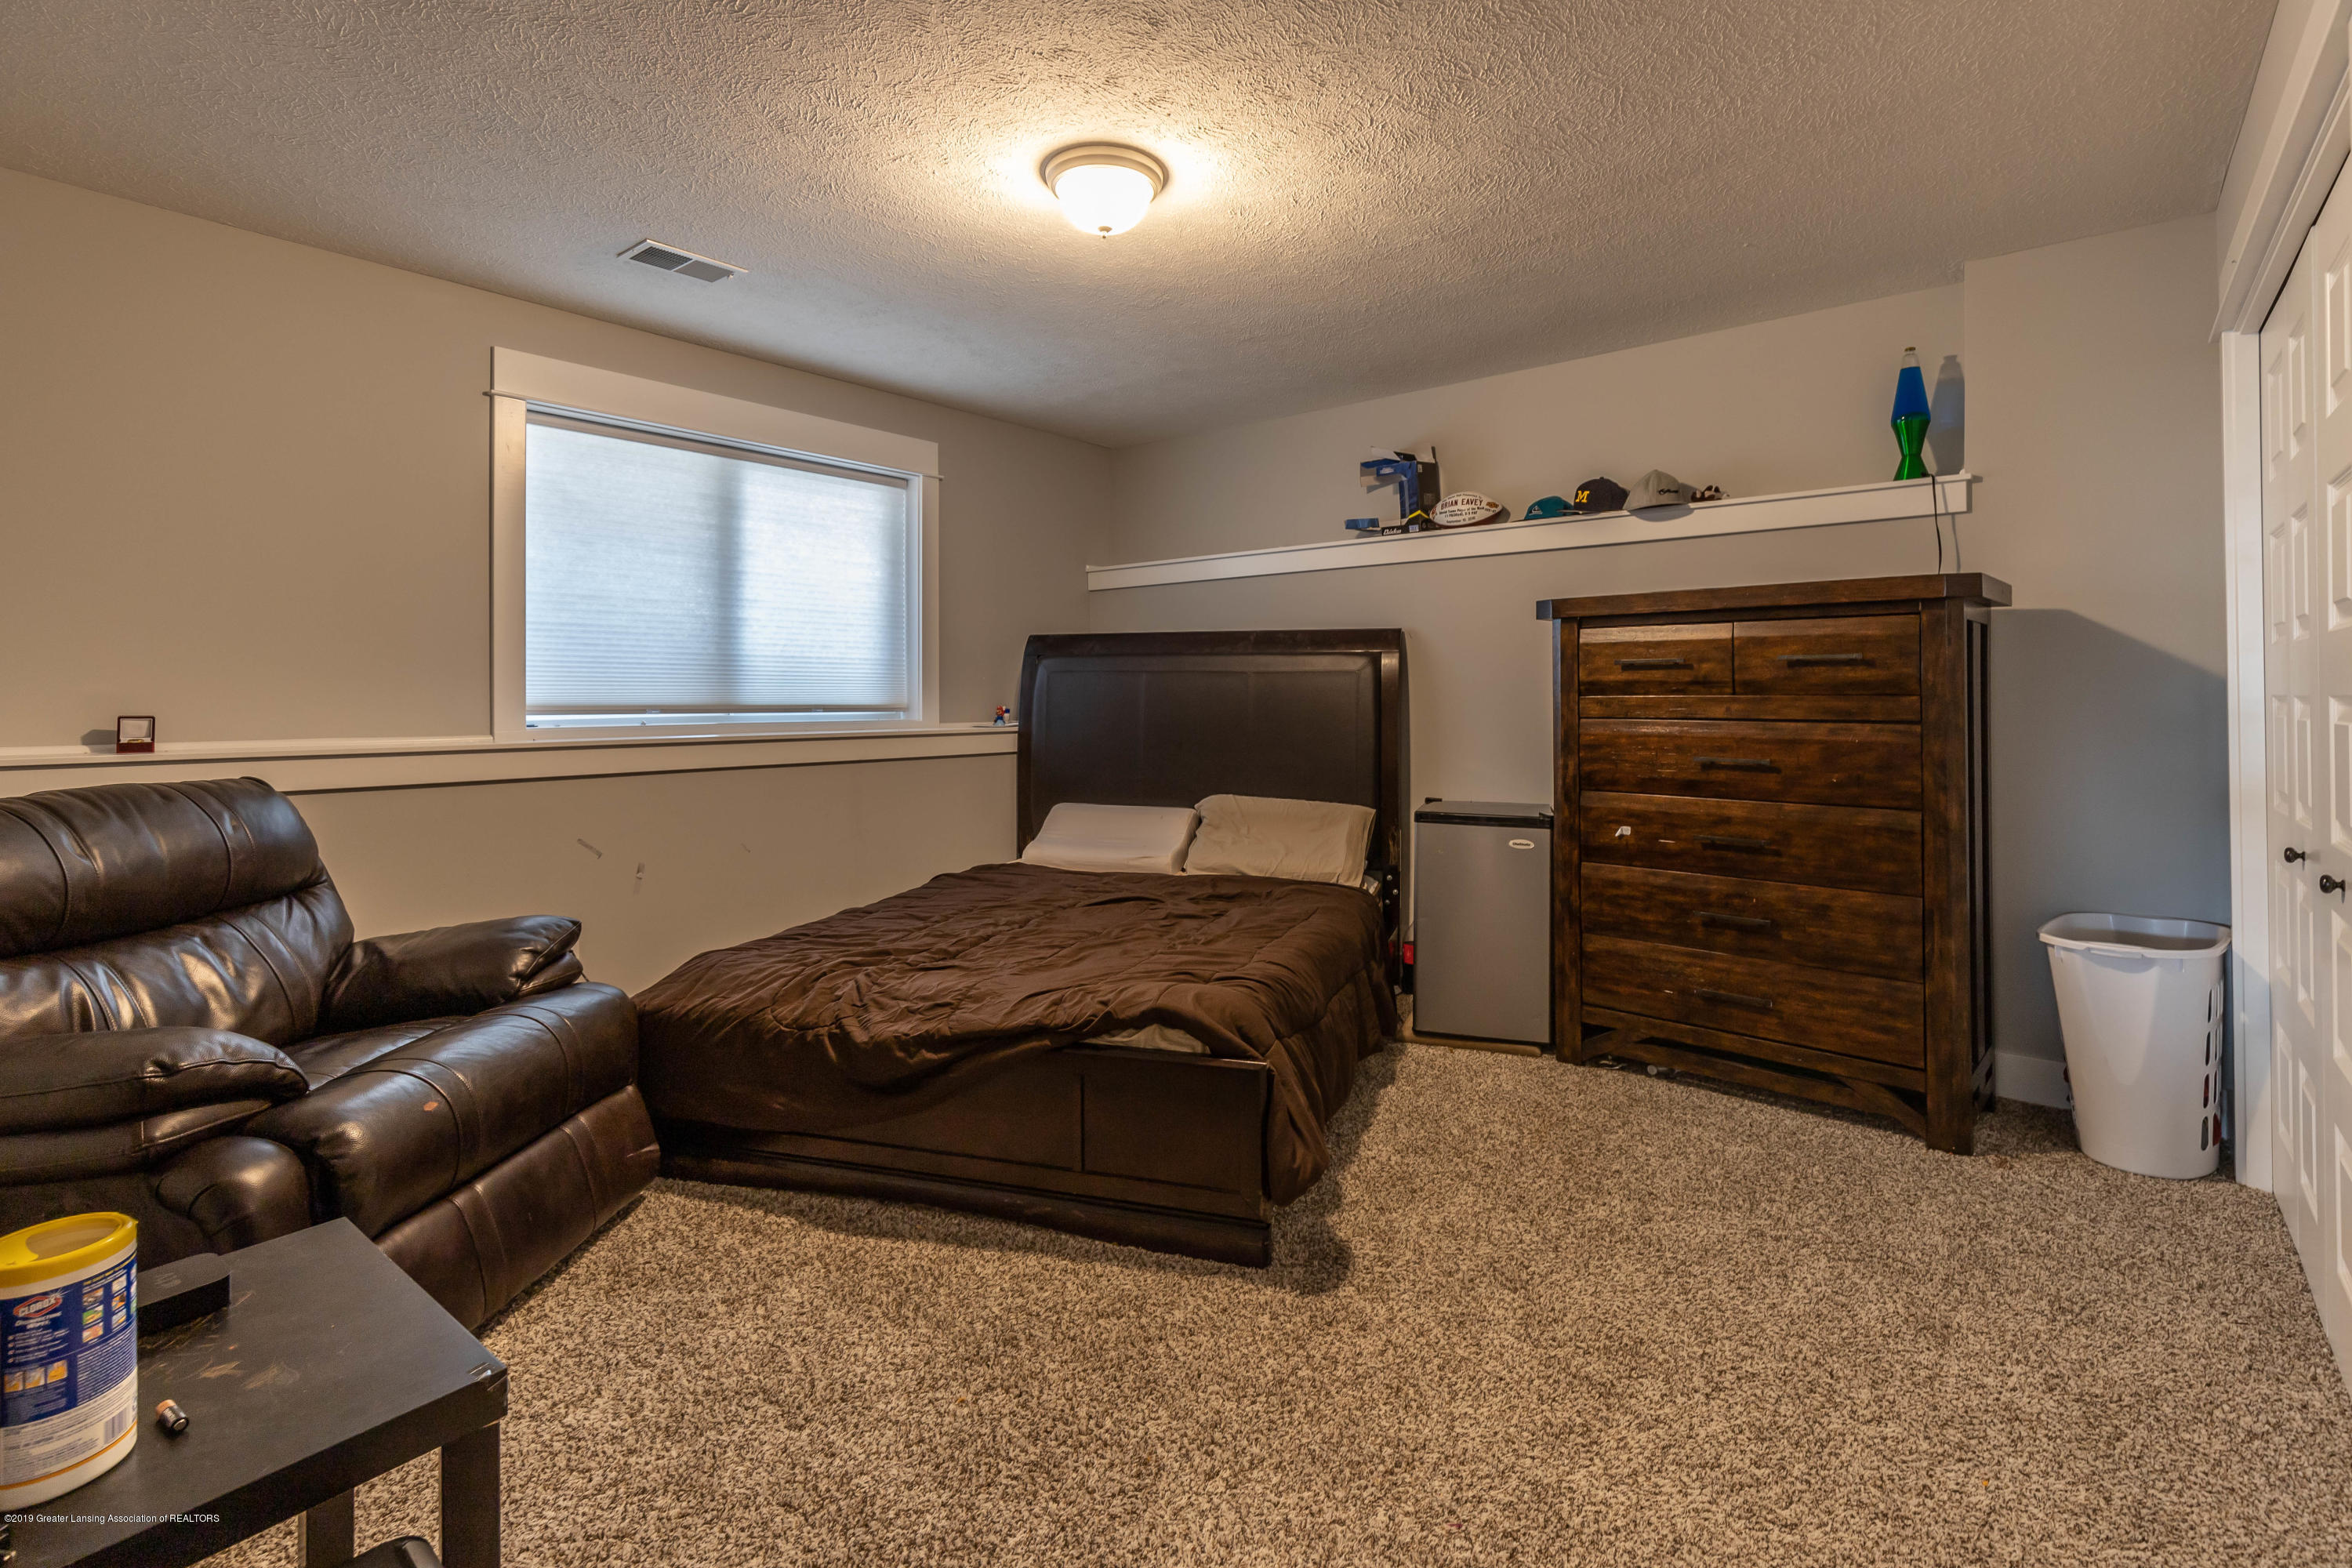 10565 Saddlebrook Dr - lower level bedroom2 - 33